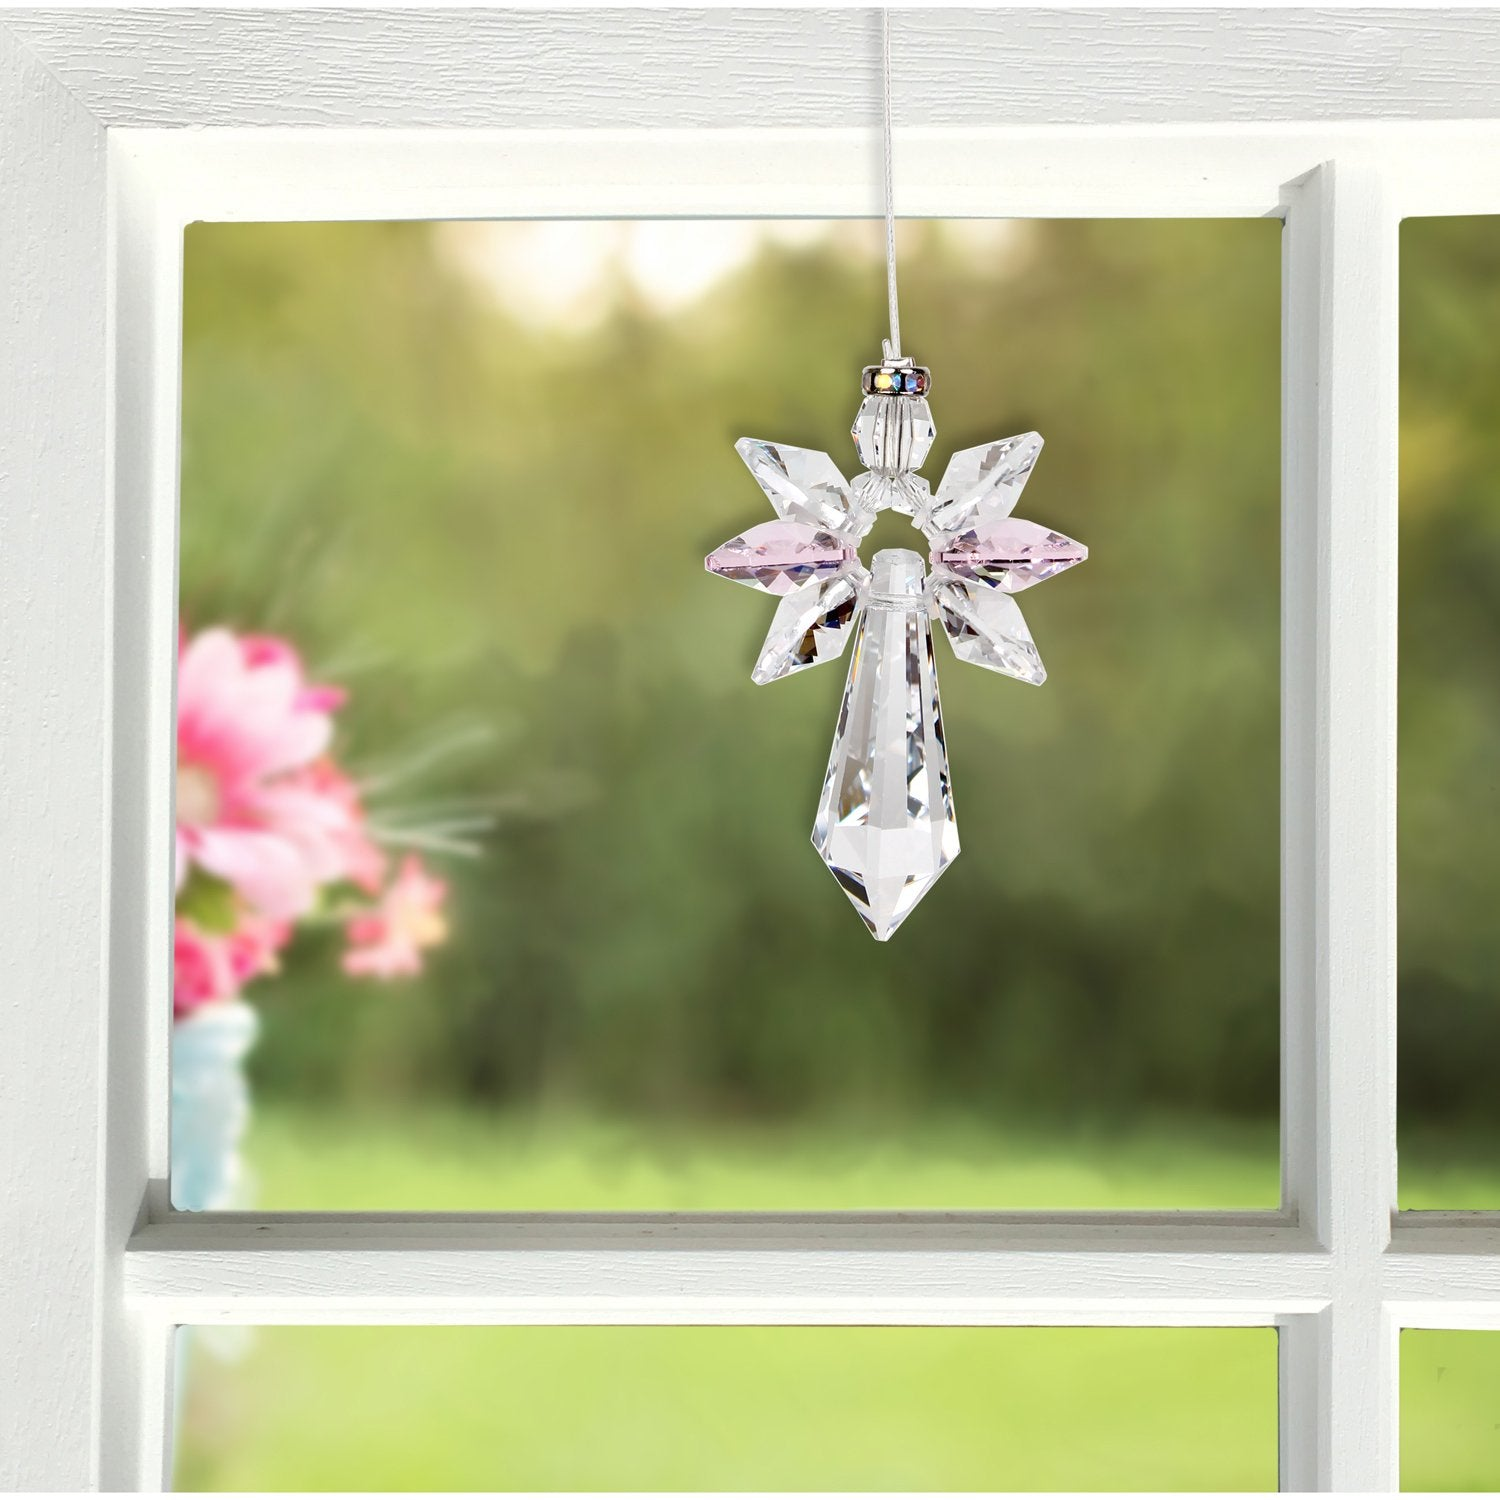 Crystal Guardian Angel Suncatcher - Large, Rose lifestyle image